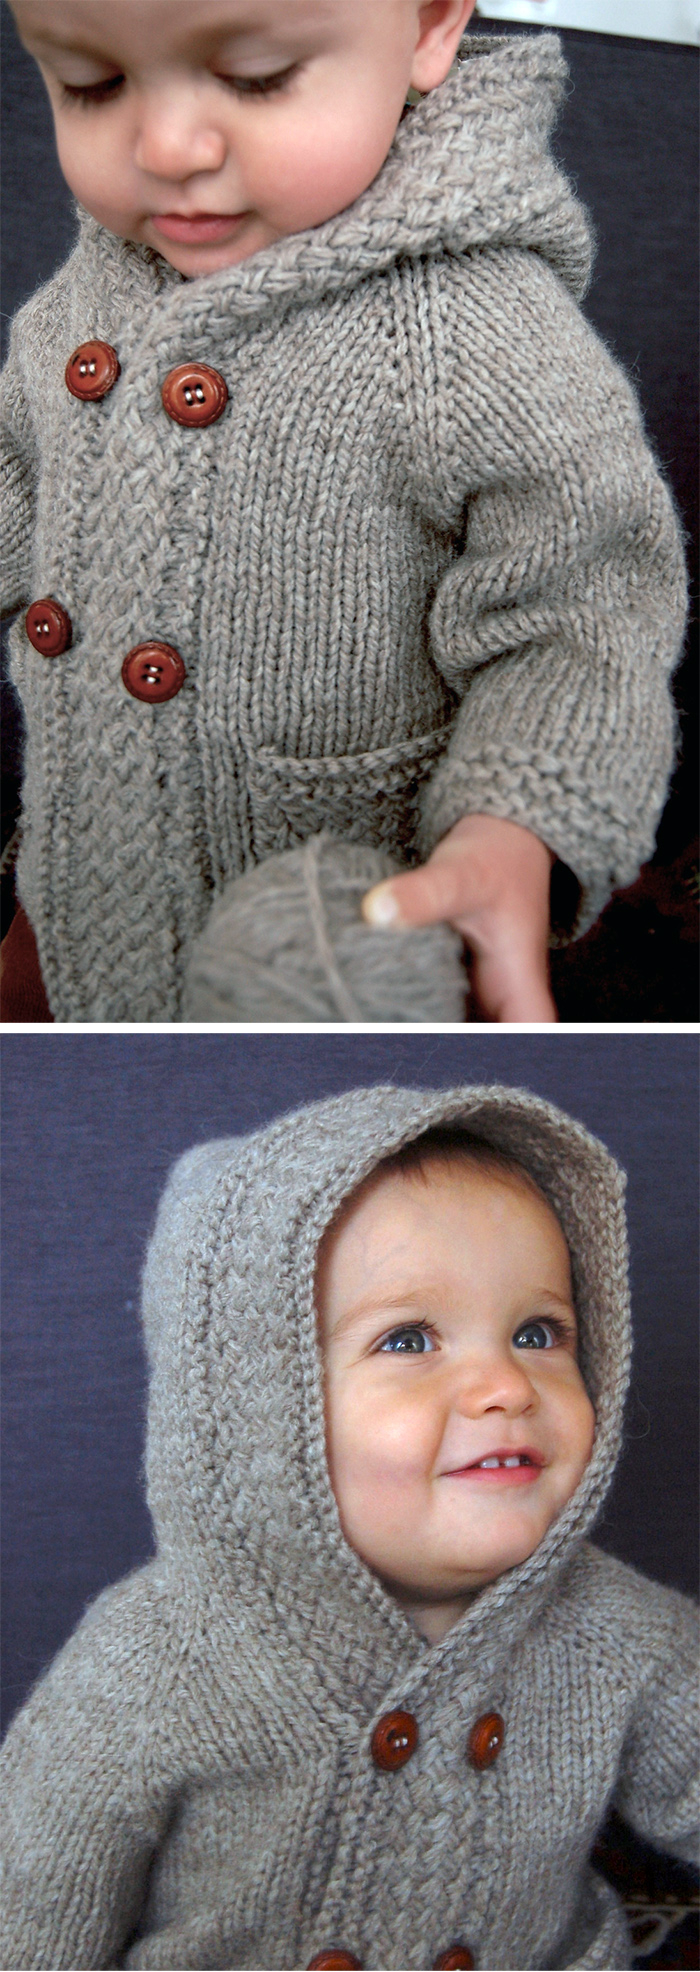 Knitted Coat Patterns Coats And Jackets For Little Ones Knitting Patterns In The Loop